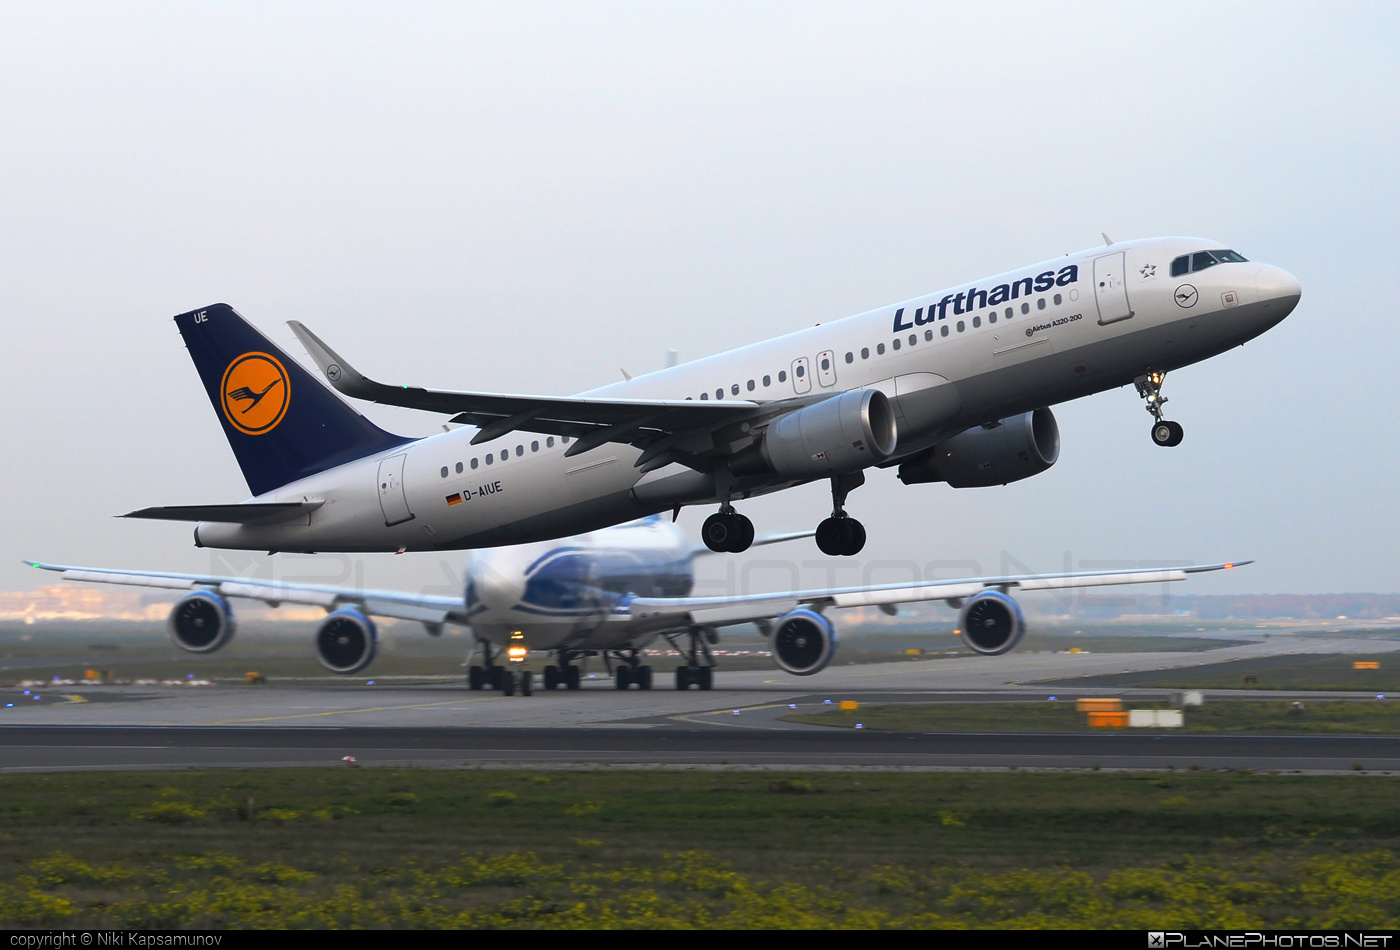 Airbus A320-214 - D-AIUE operated by Lufthansa #a320 #a320family #airbus #airbus320 #lufthansa